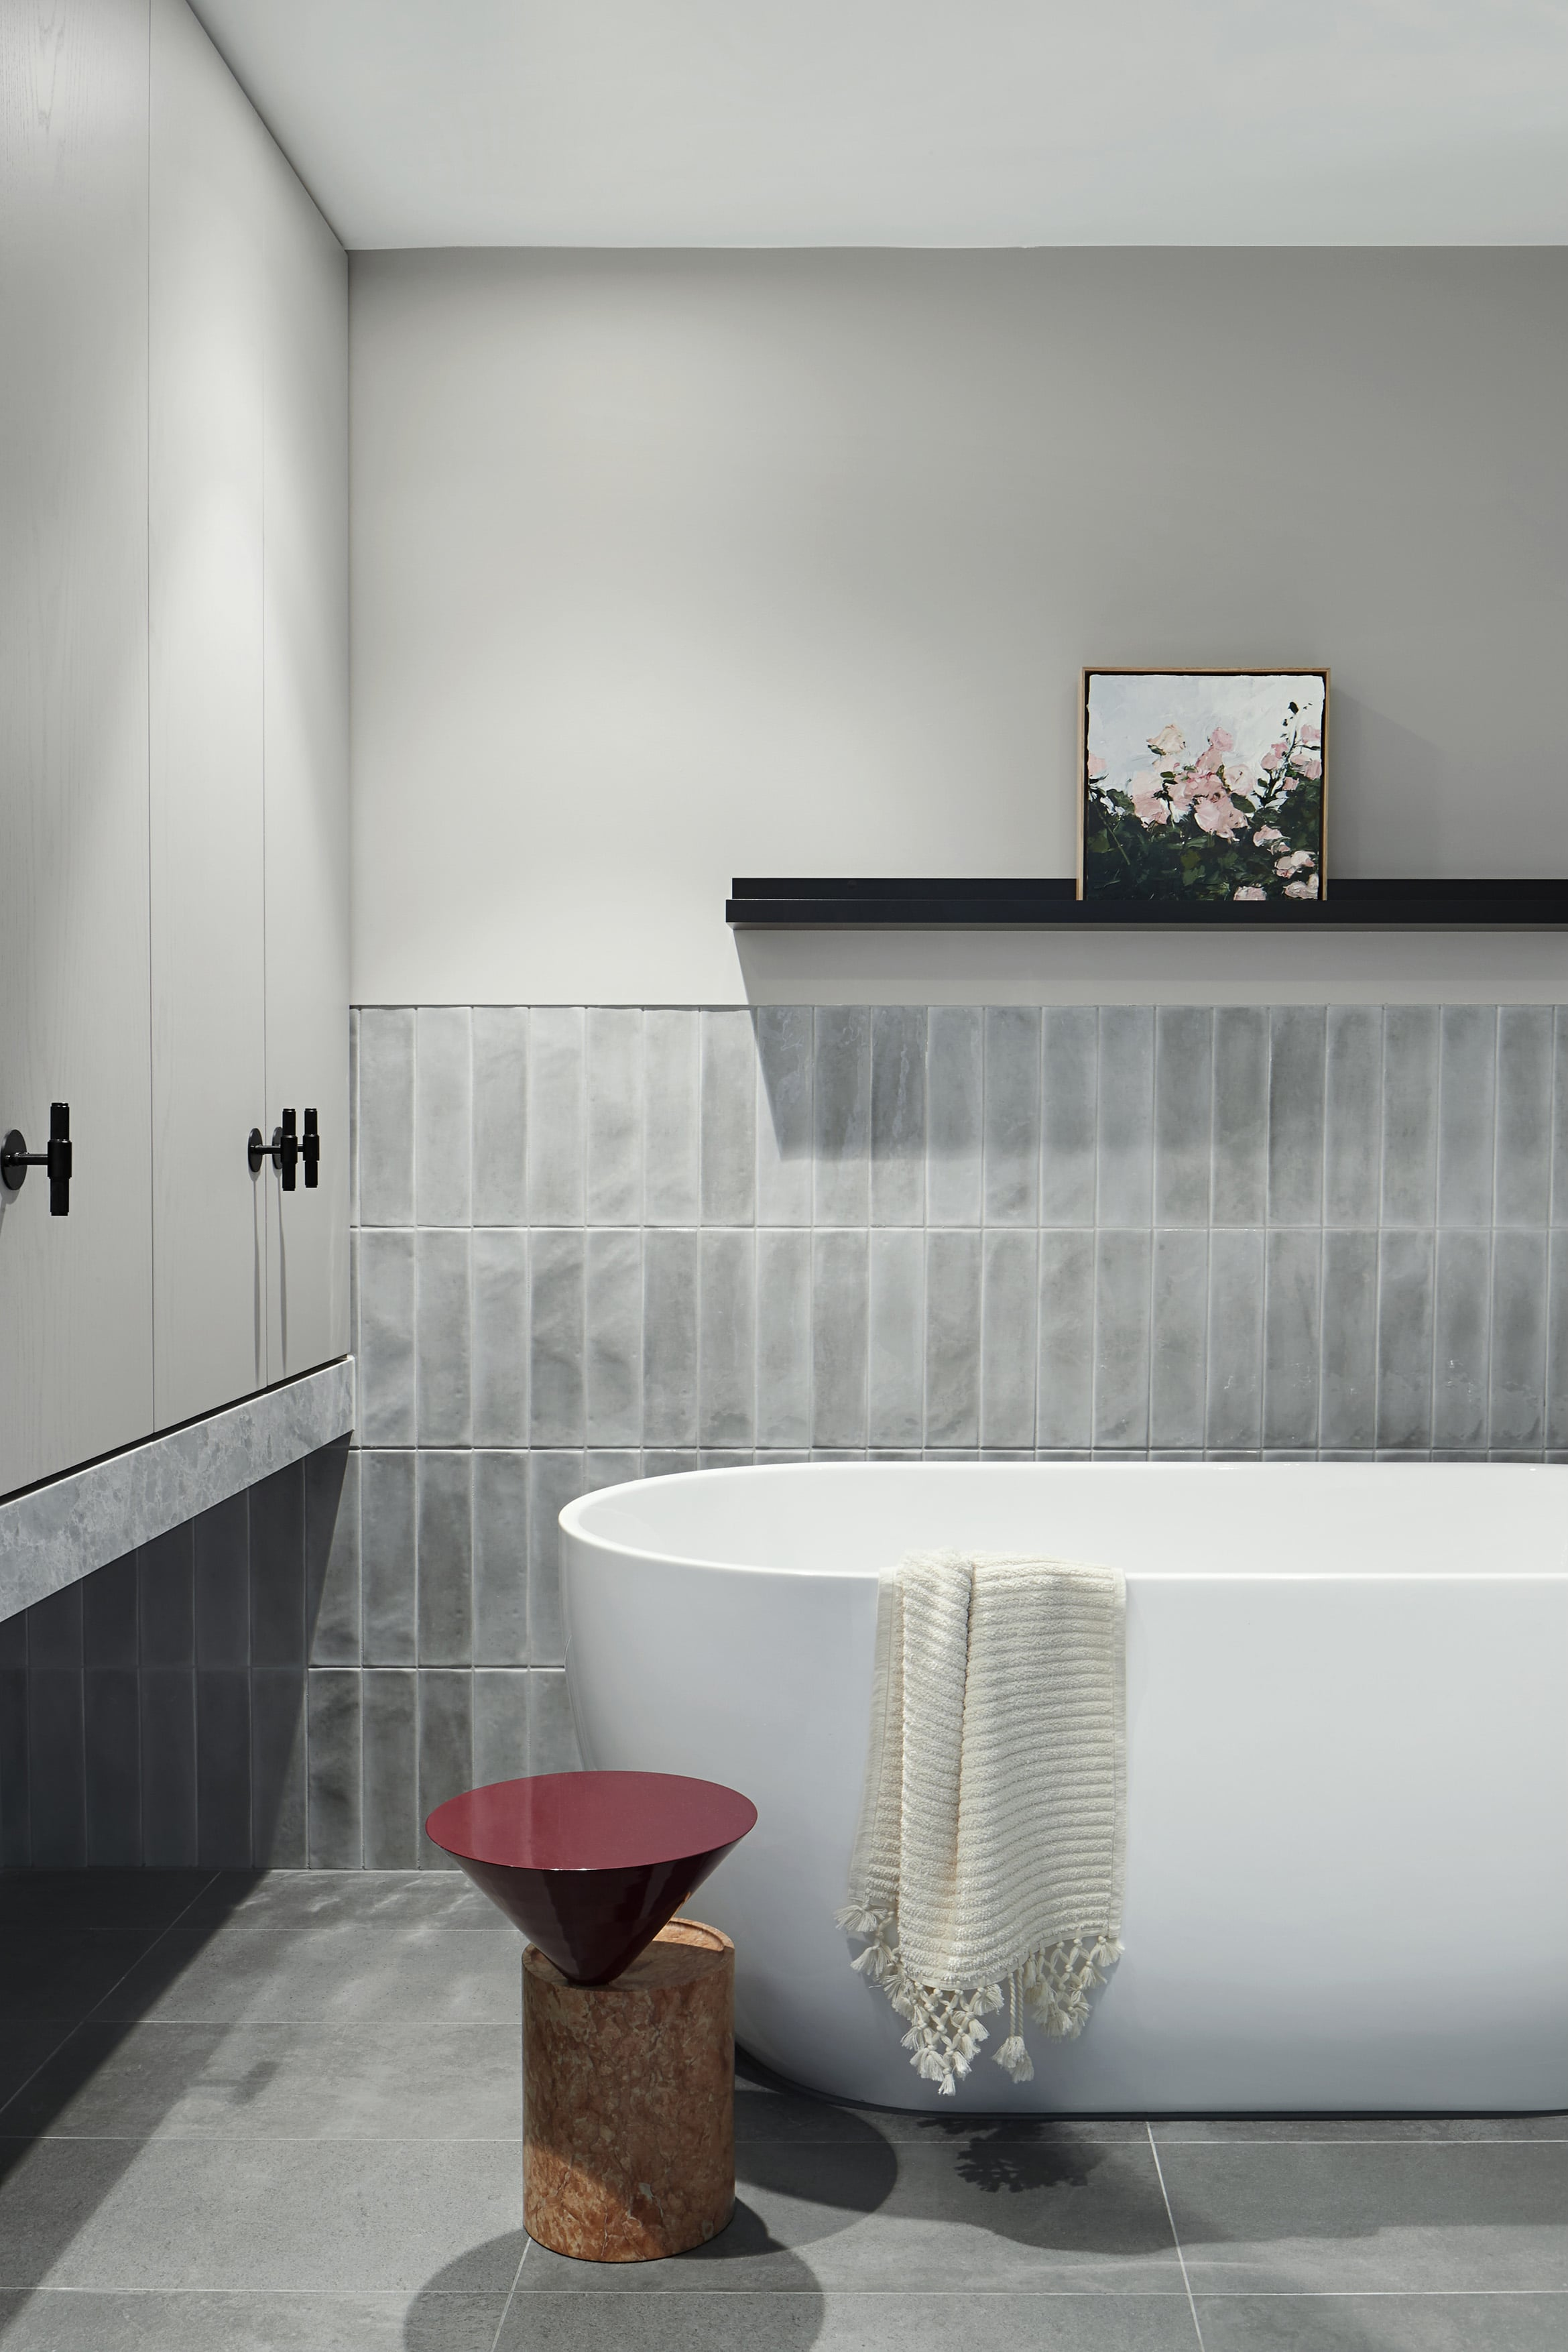 Kew Apartment by Sarah Wolfendale - Interior Bathroom Tiles Melbourne Design